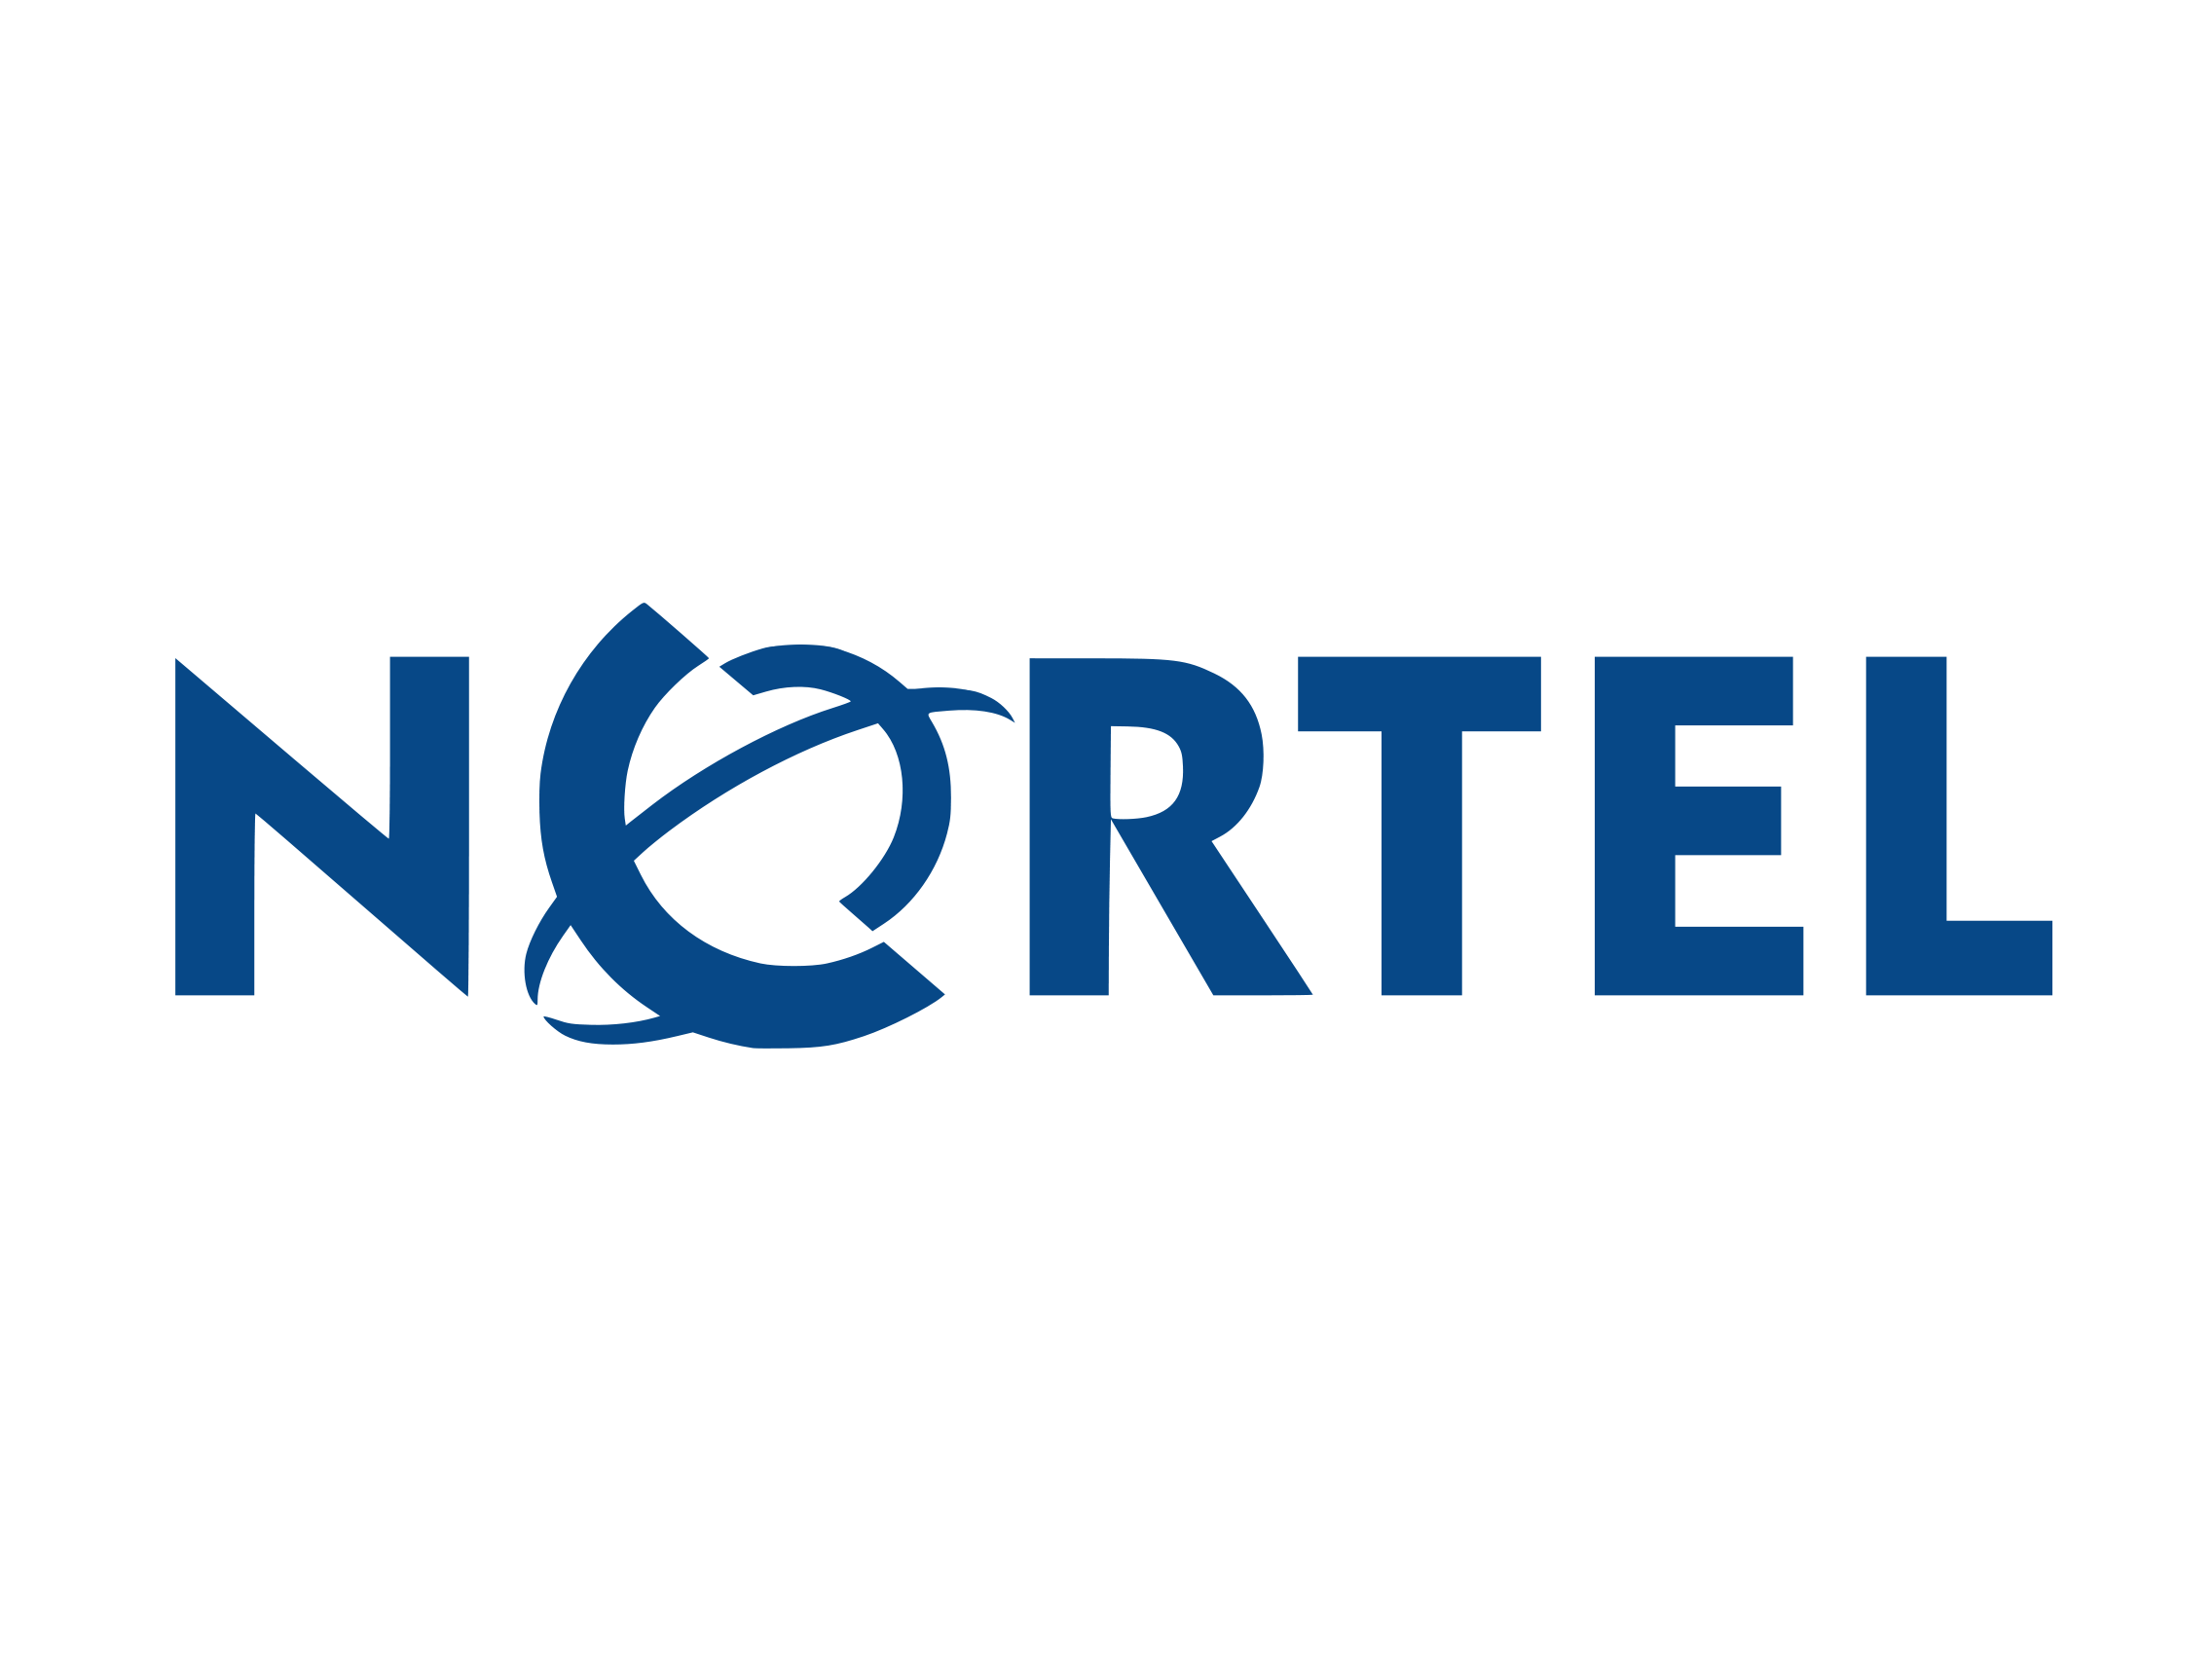 Nortel Telecom Equipment